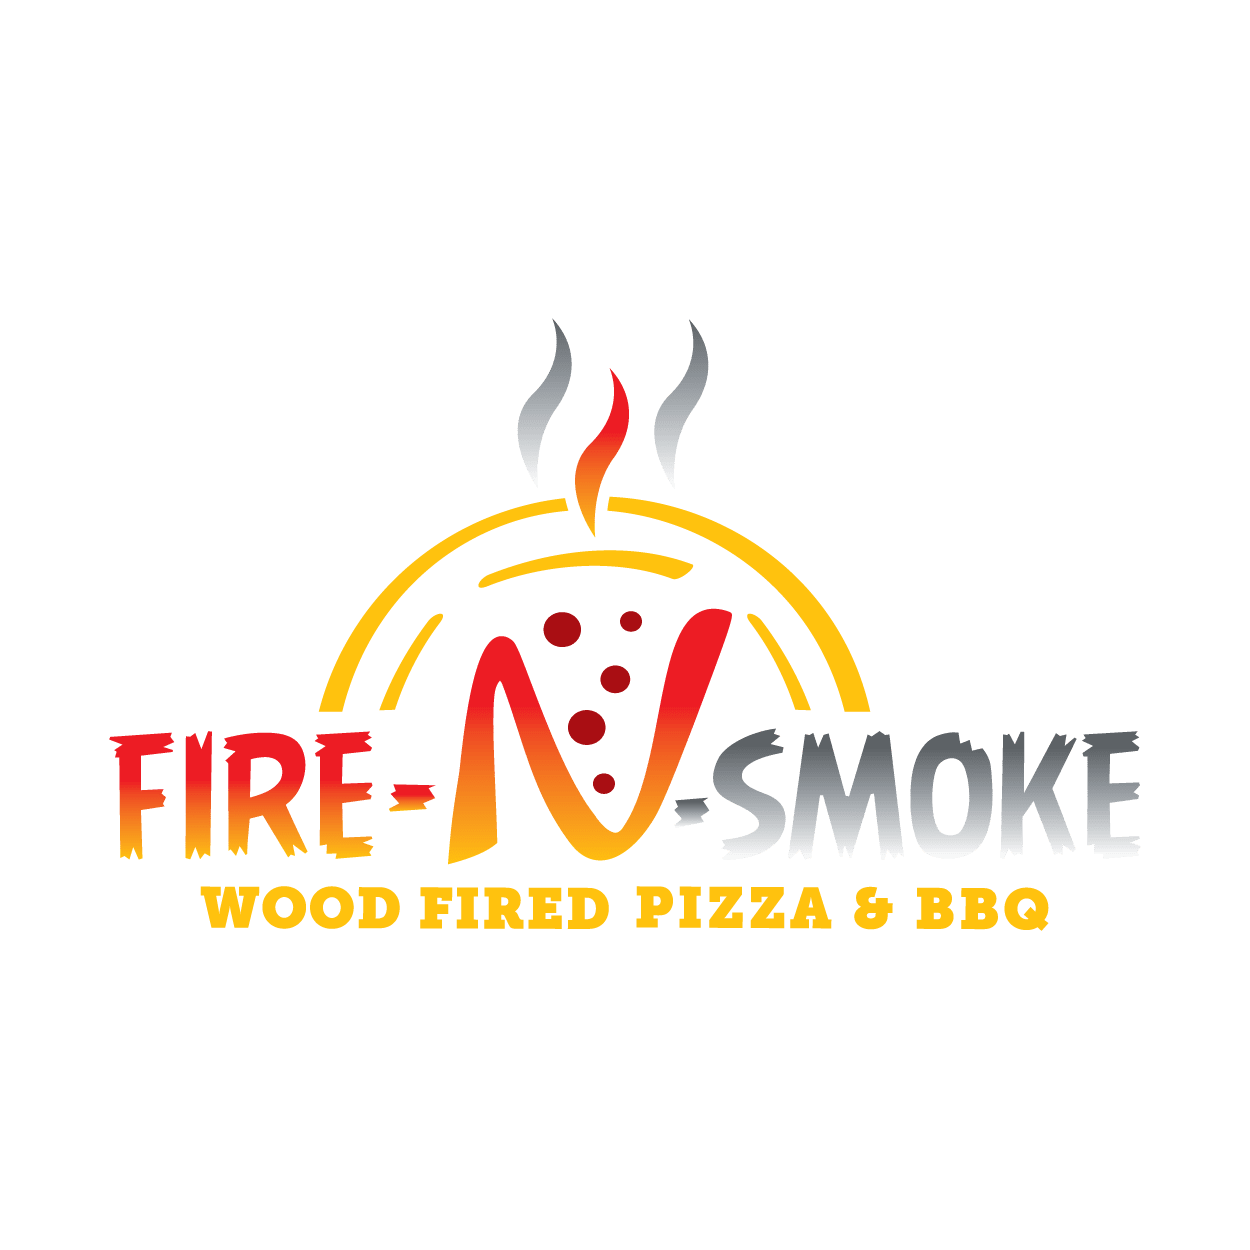 Fire N' Smoke Wood Fired Pizza & BBQ